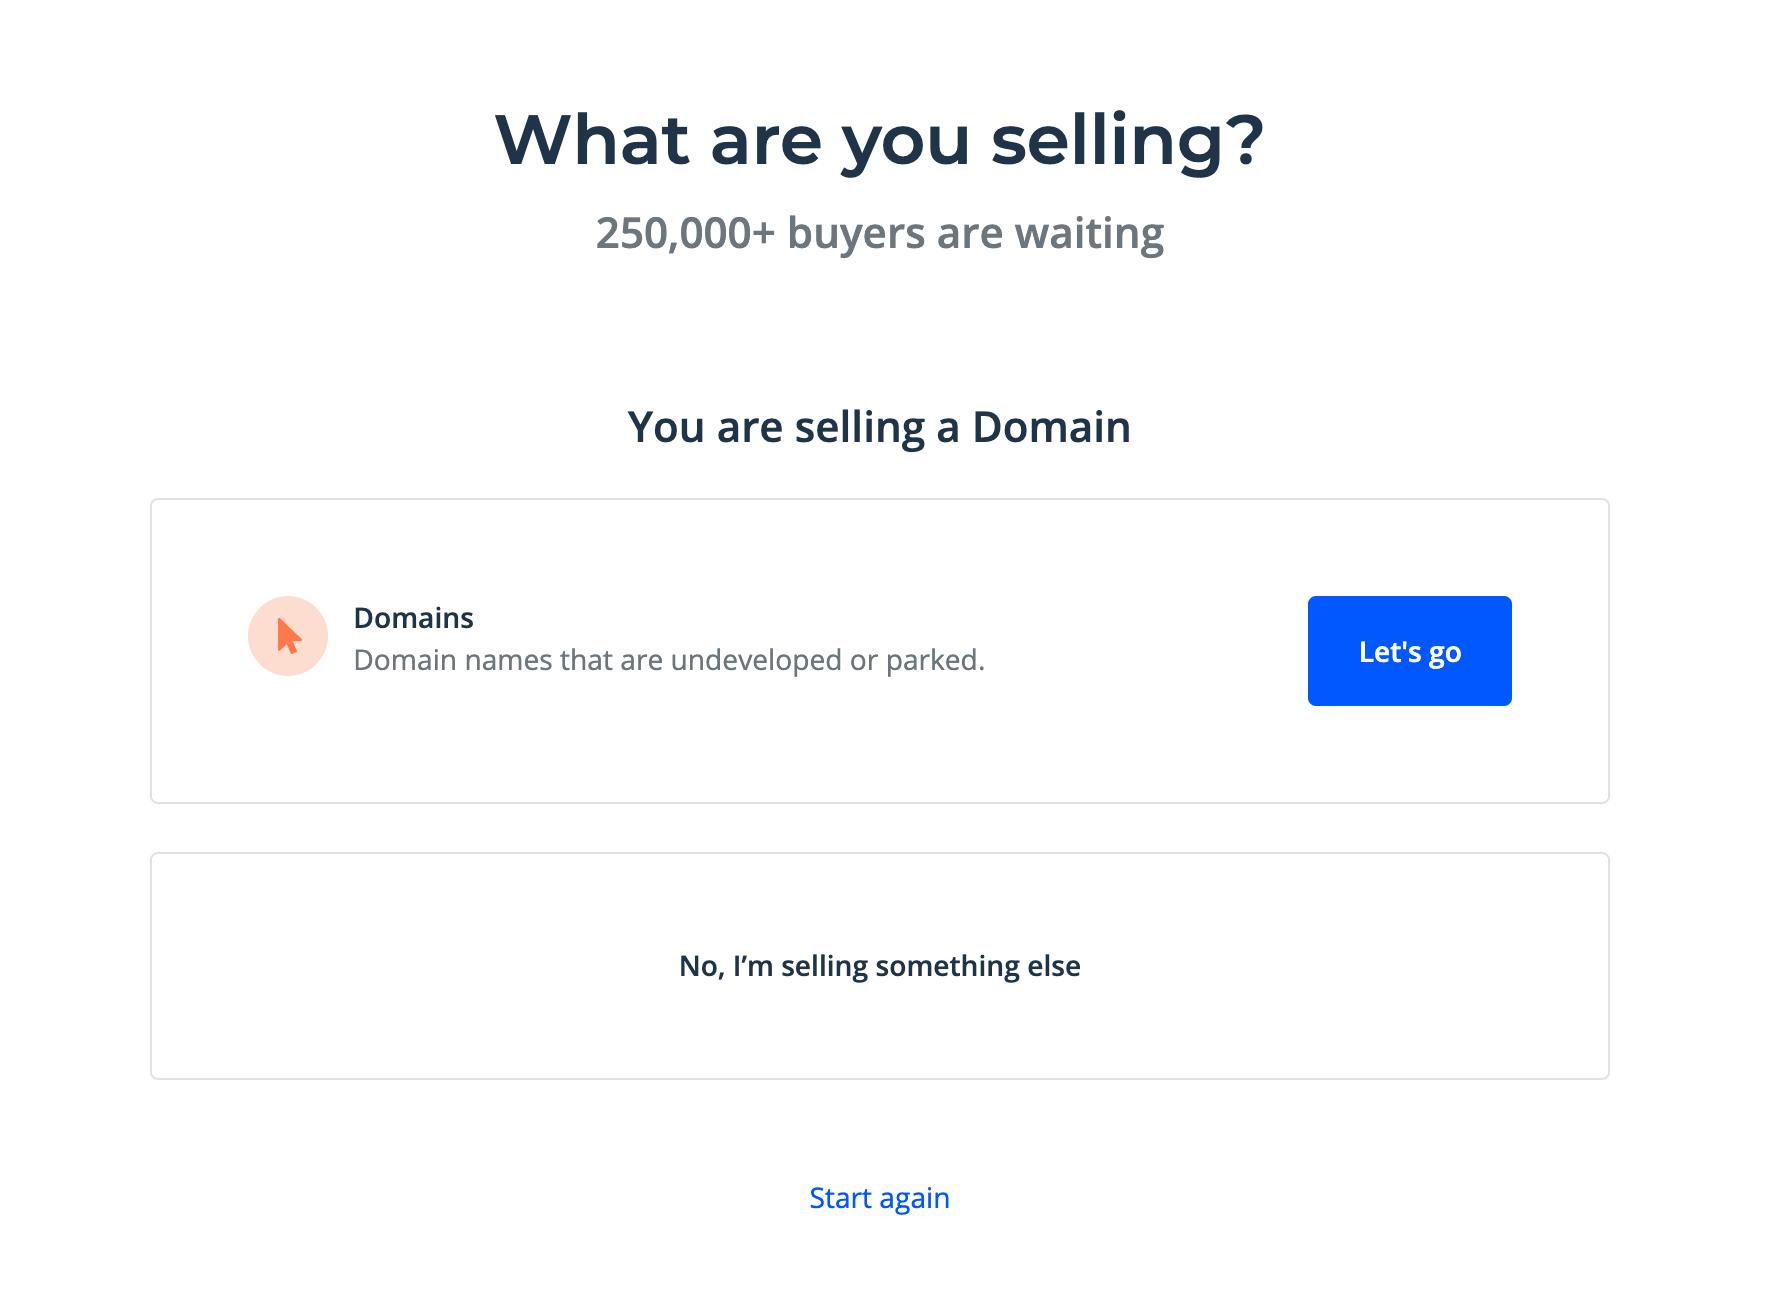 Confirming you want to sell a domain on Flippa.